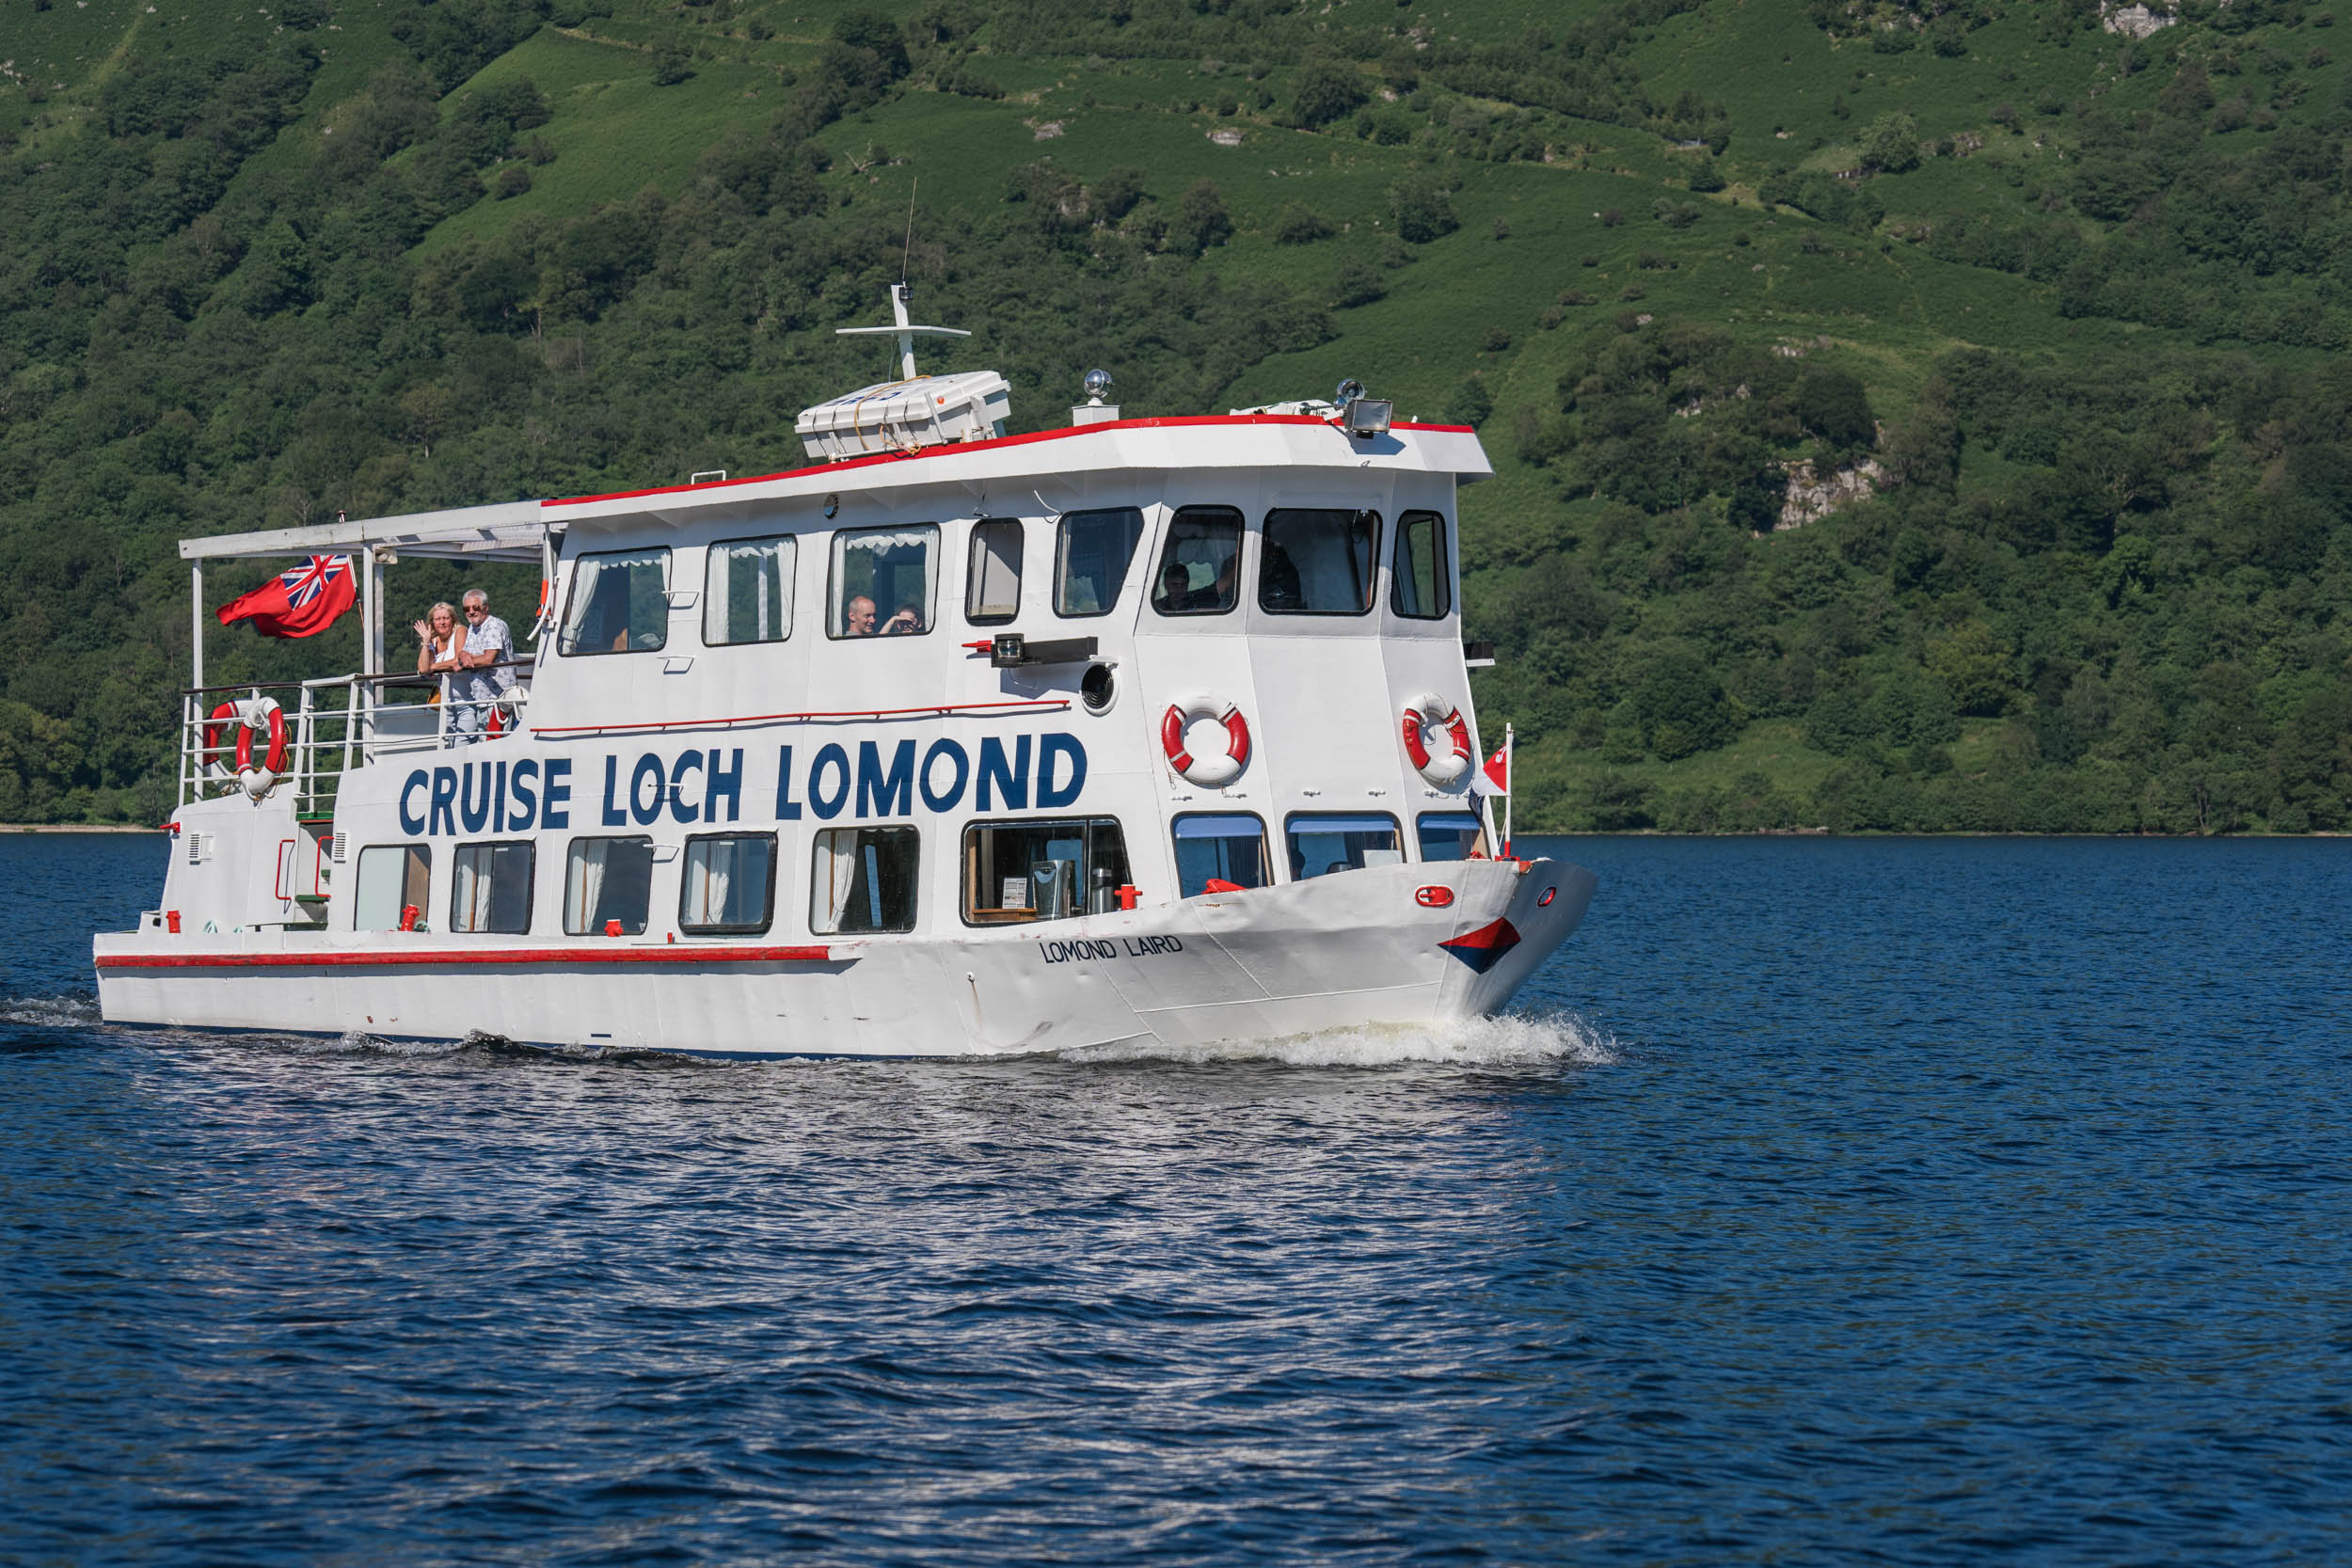 Cruise Loch Lomond, Near Tarbet